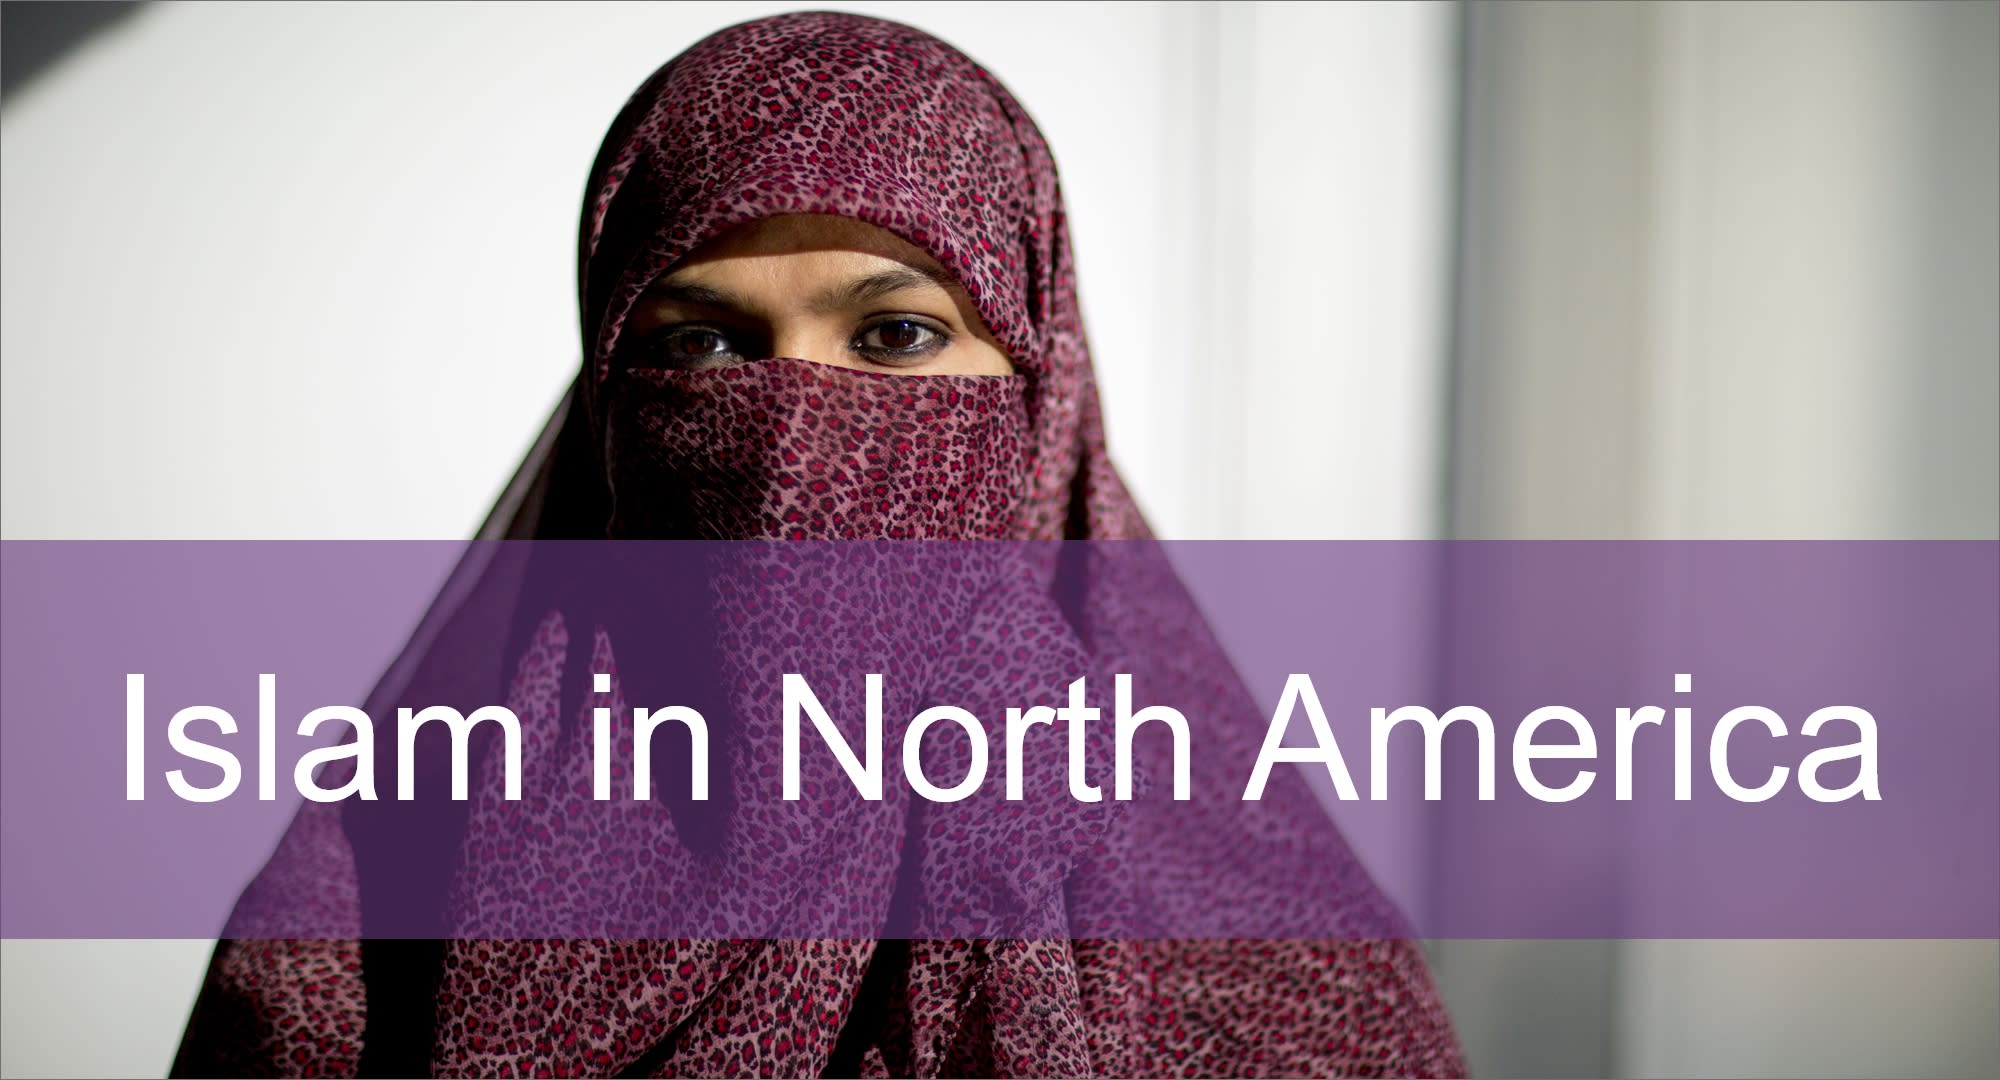 Click here to view content on Islam in North America